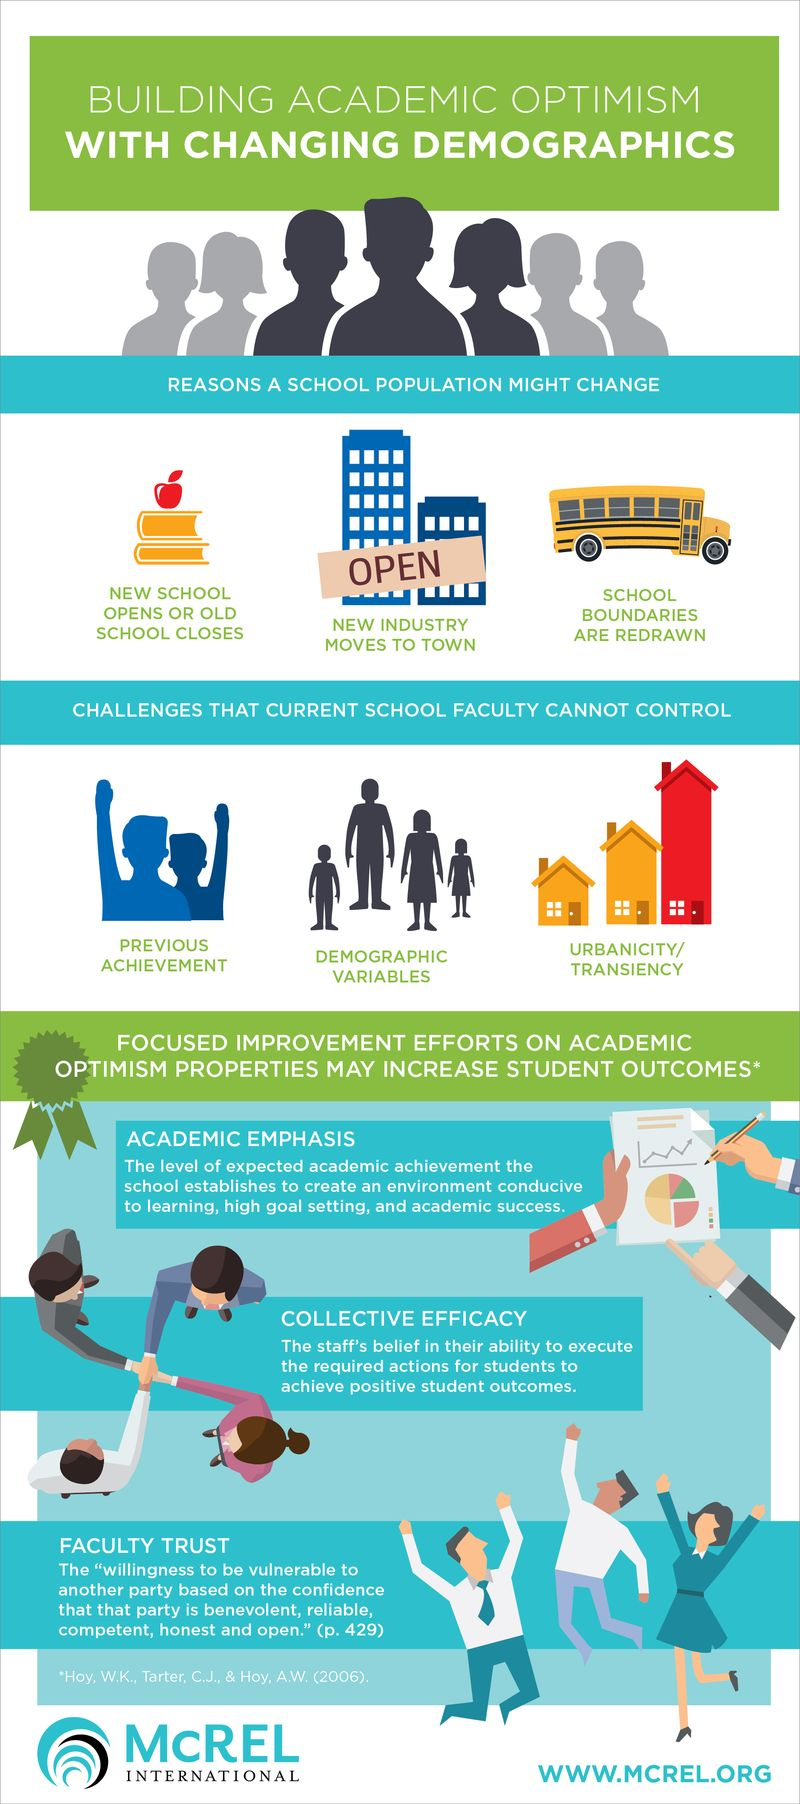 Academic Optimism Properties-infographic_McREL